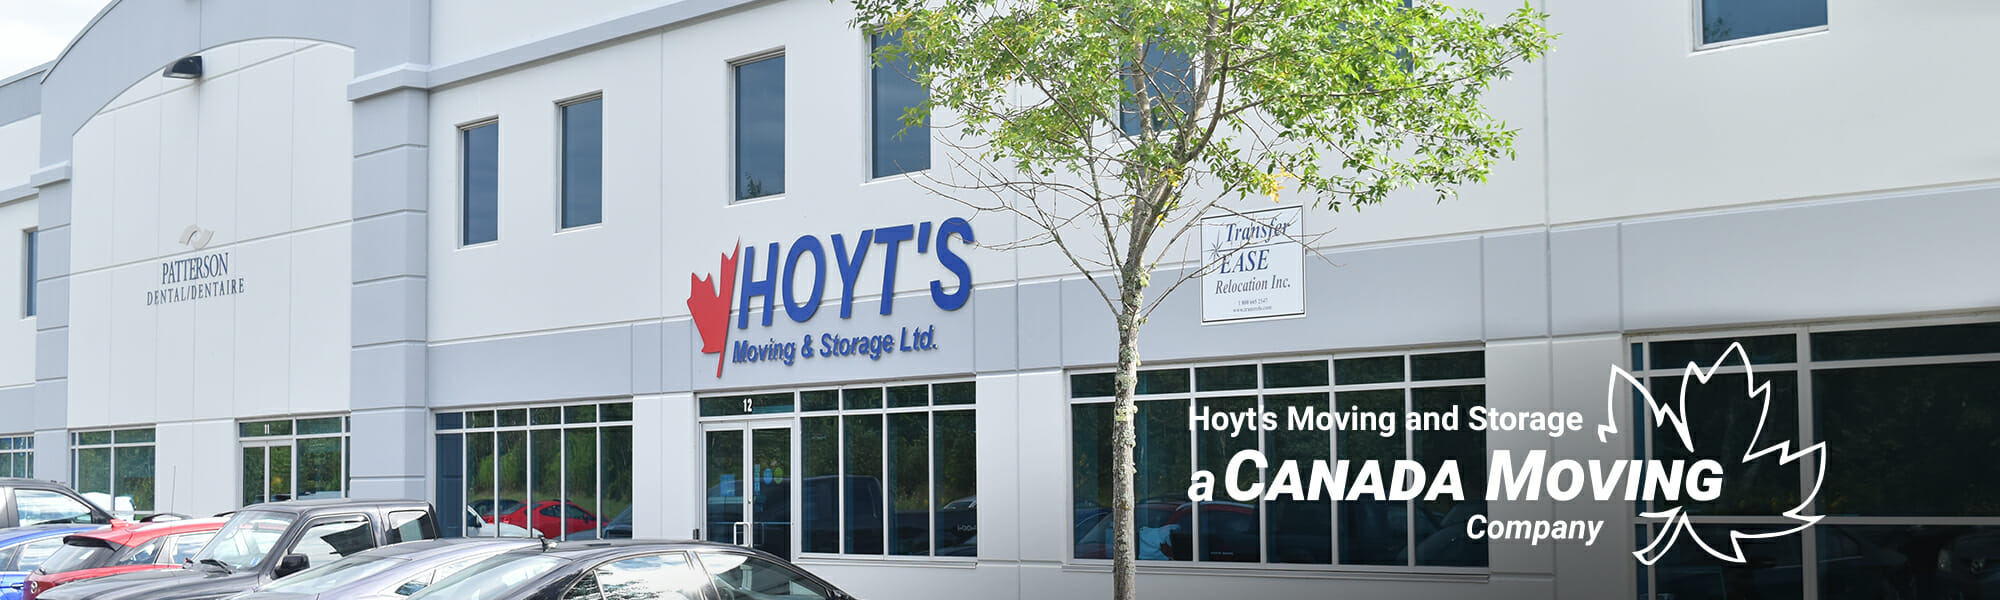 Hoyts-dartmouth-canada-moving